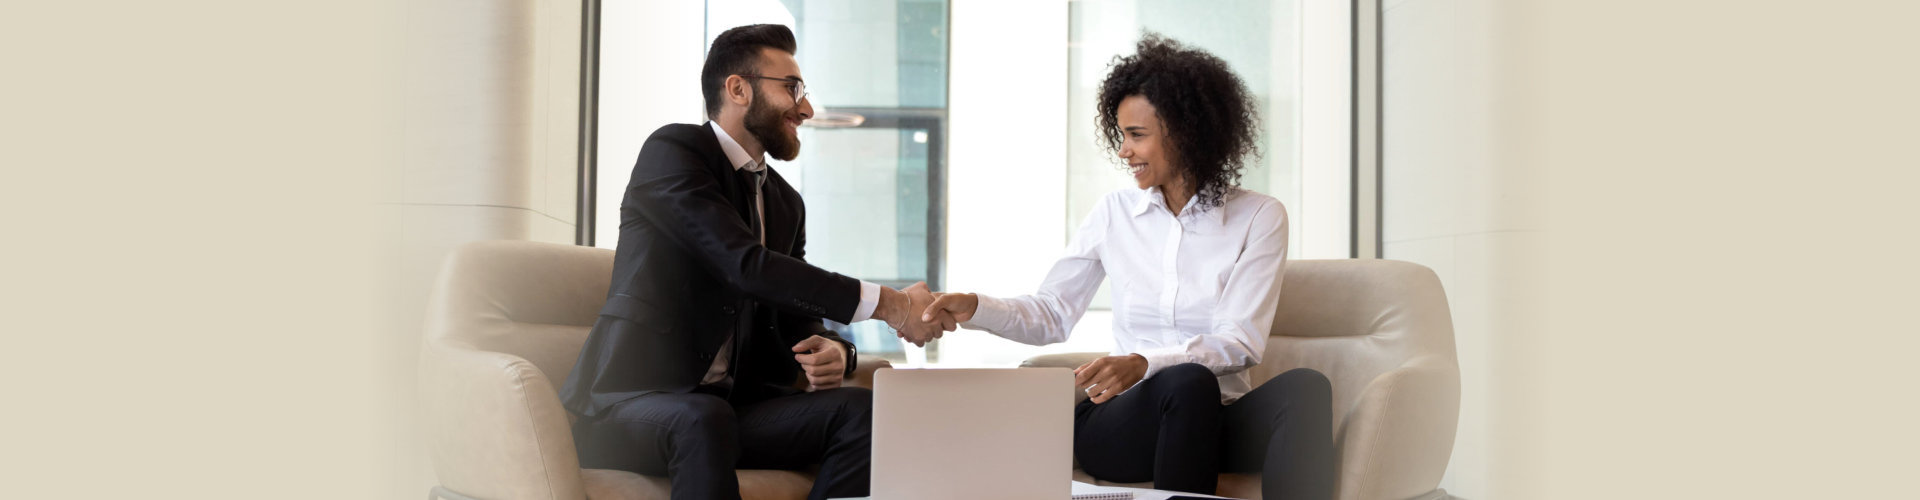 two person shaking their hands